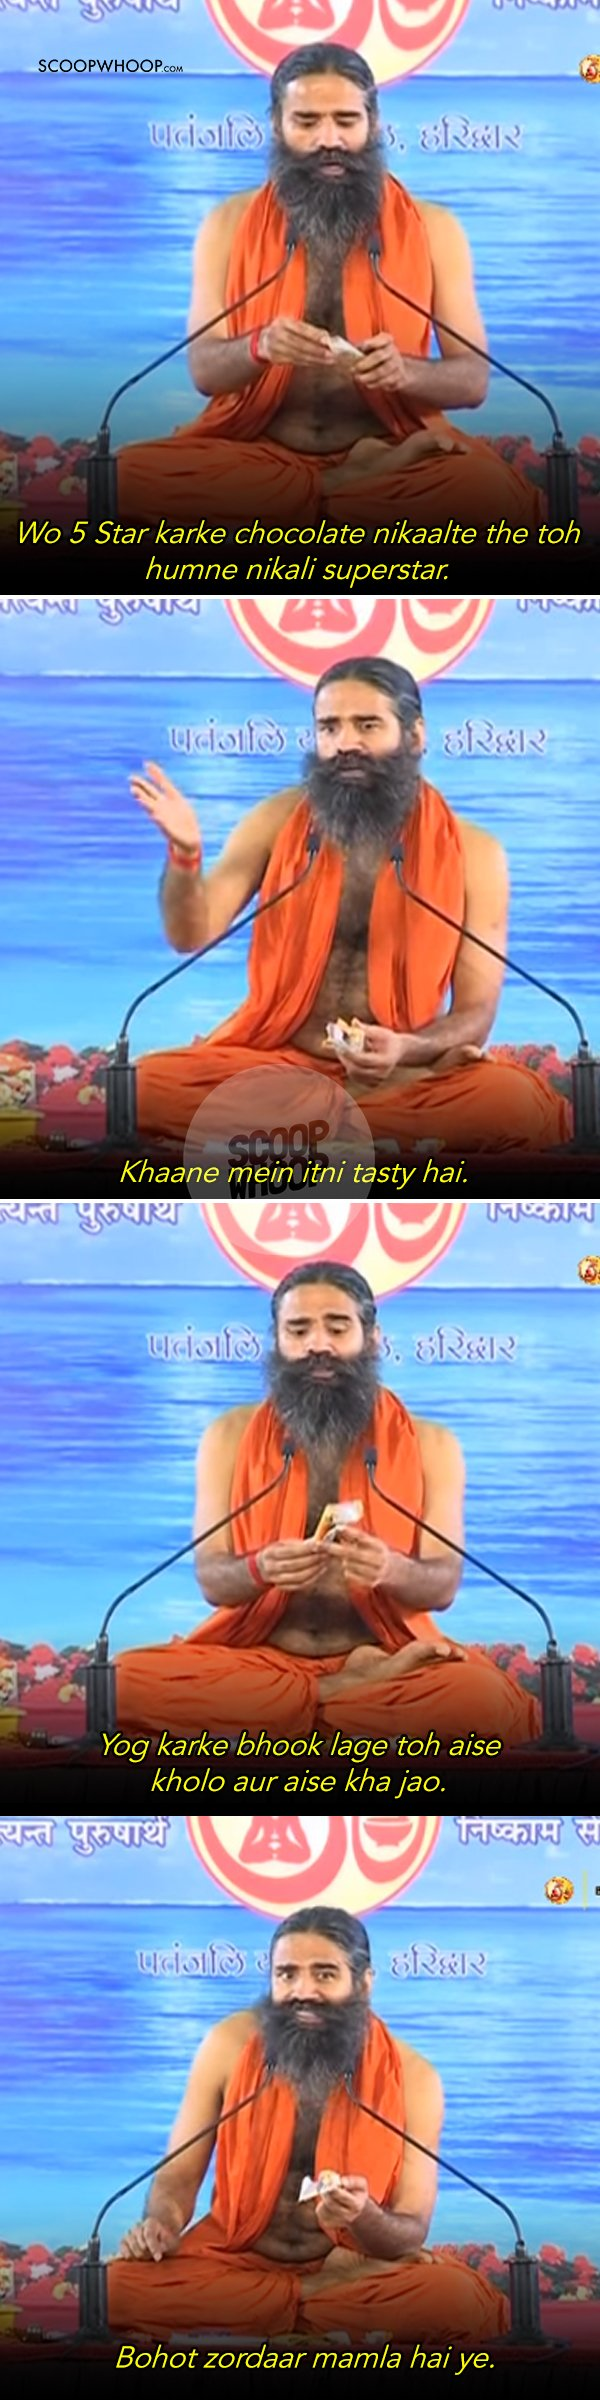 7 Golden Baba Ramdev Statements That Yoga-ed The F**k Out Of